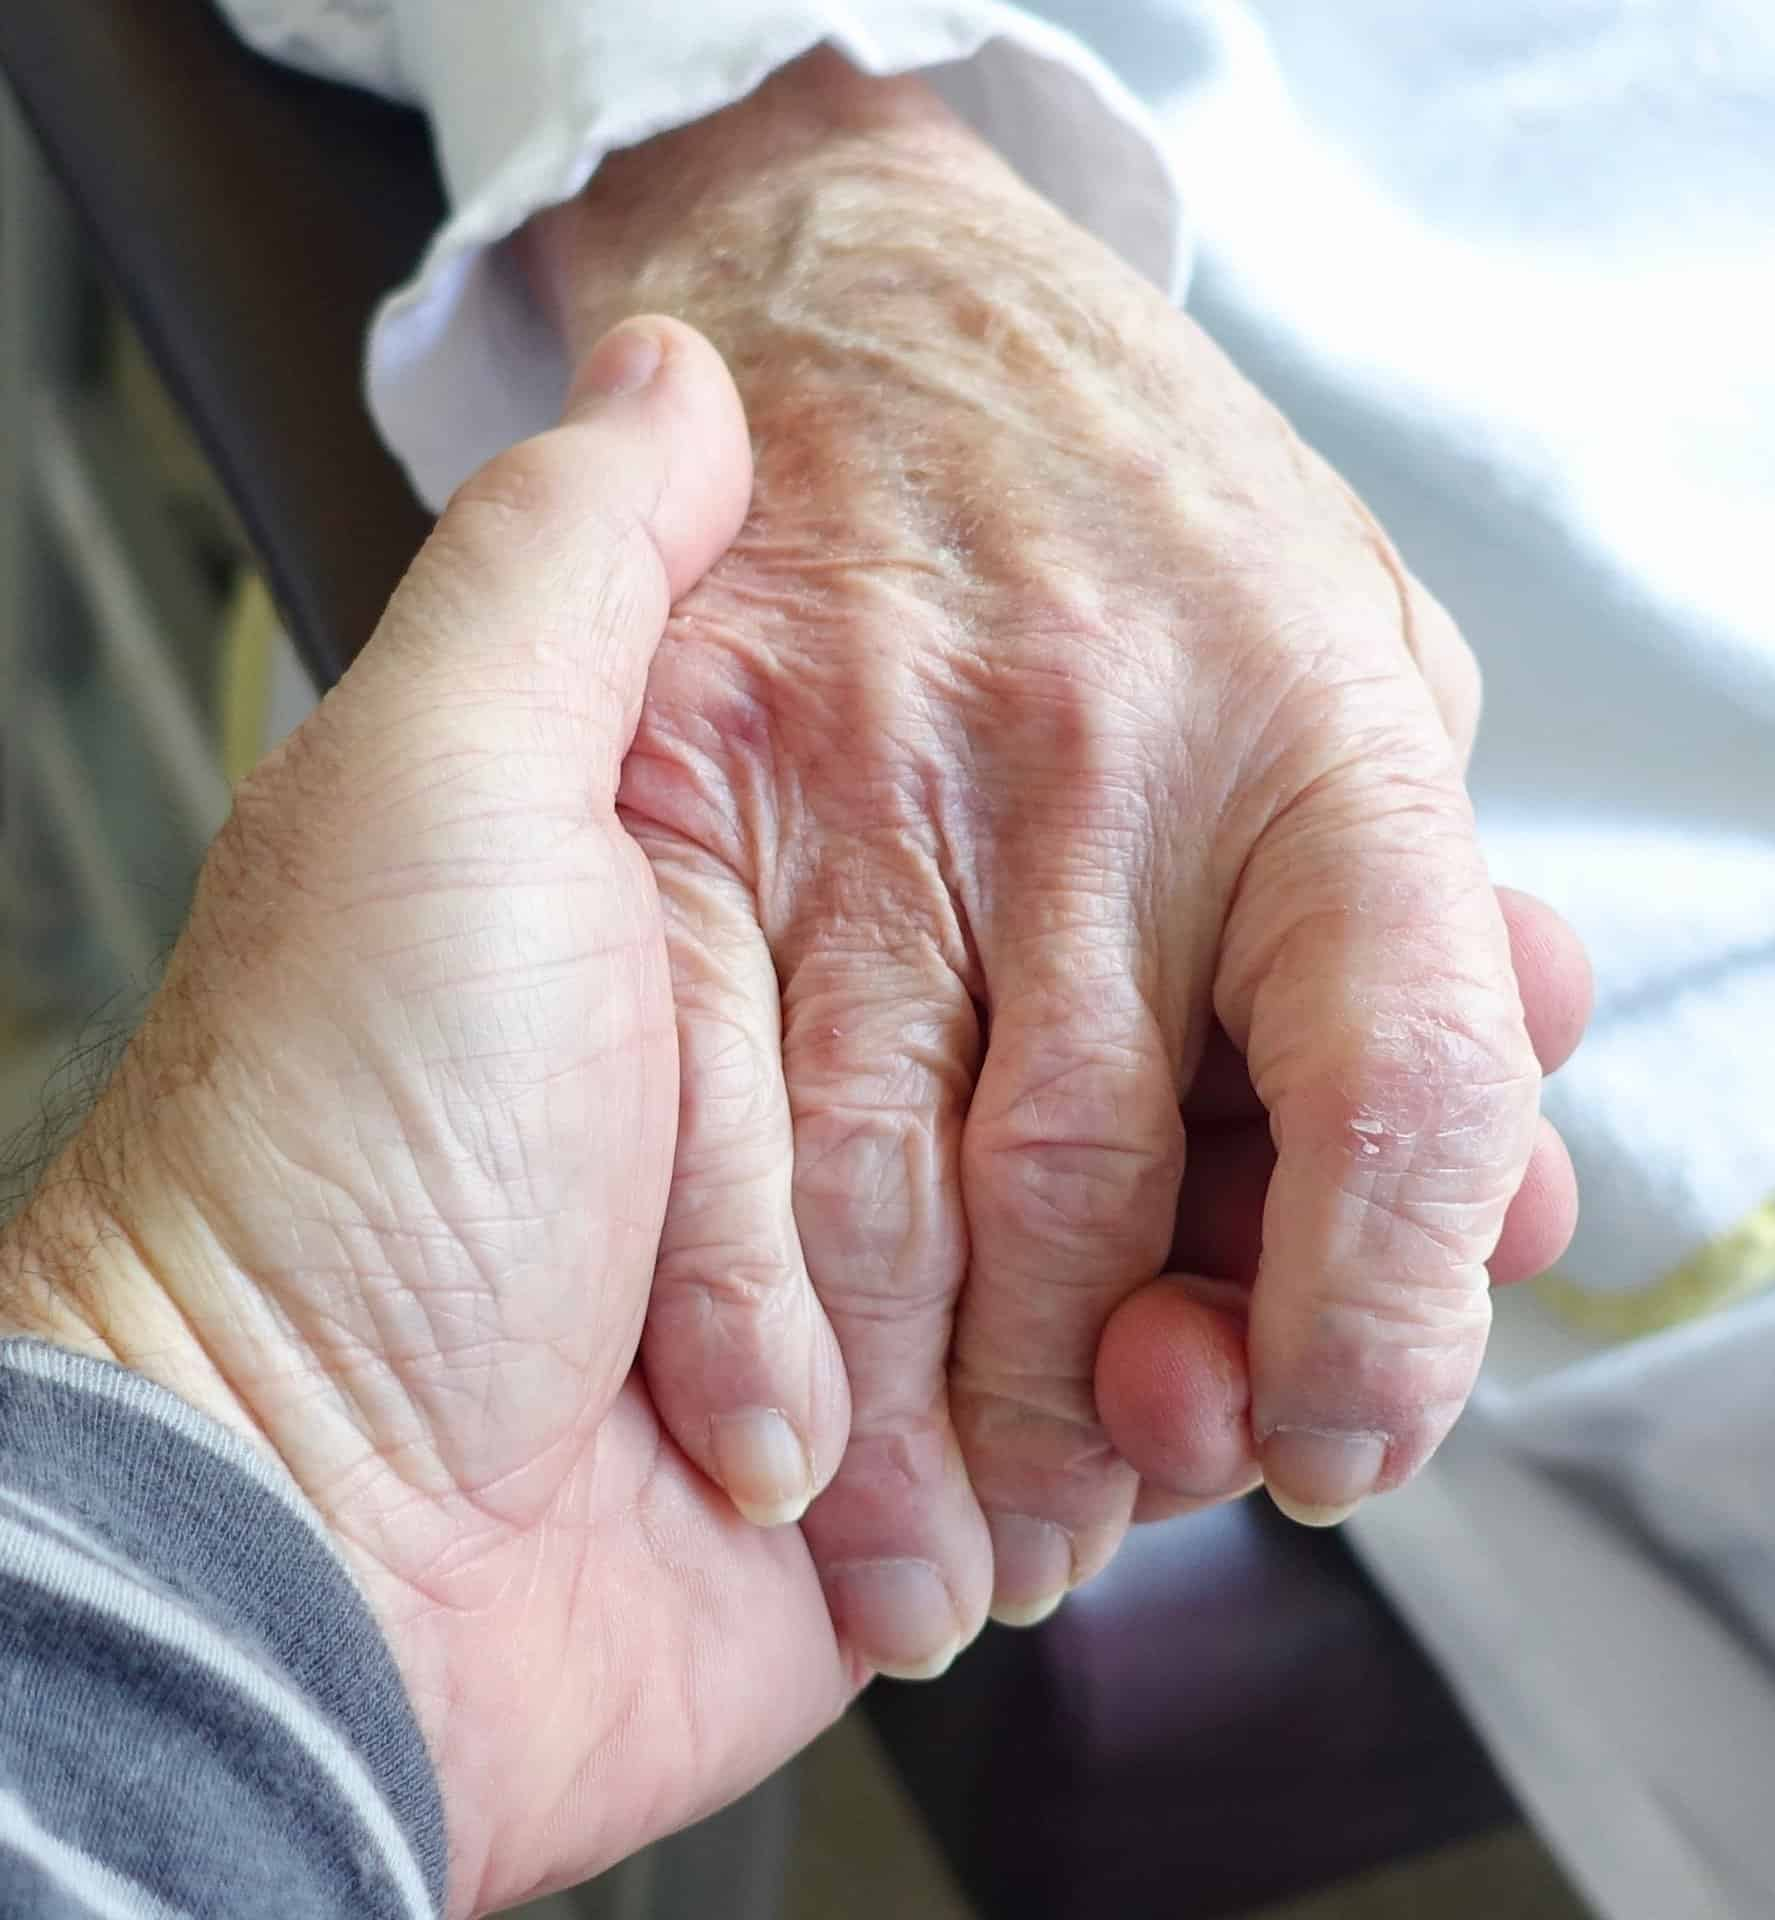 Man holding gently an old woman's hand